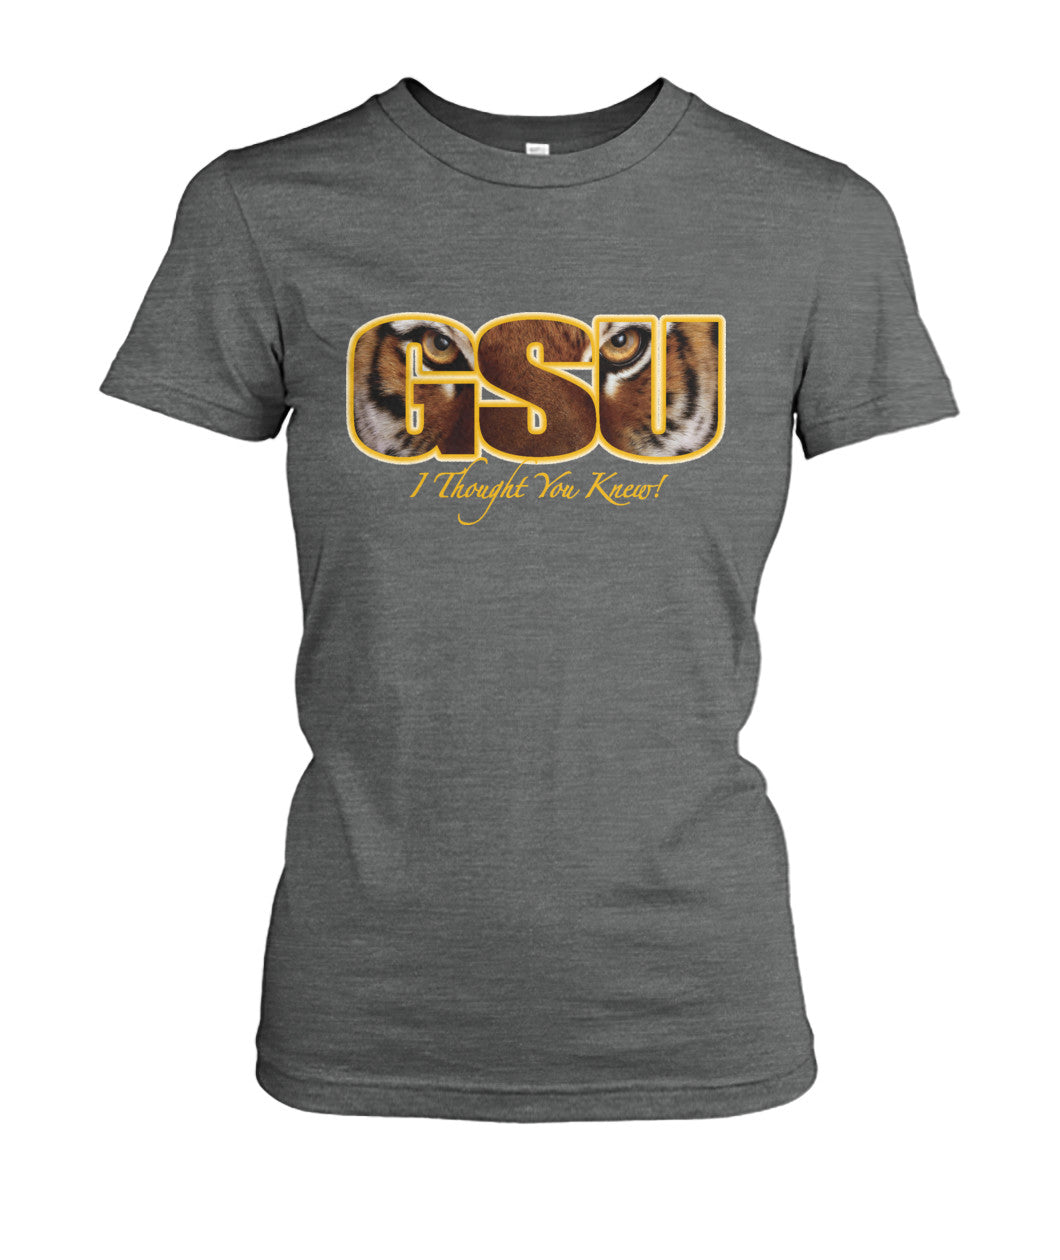 GSU I Thought You Knew Shirt Women's Crew Tee